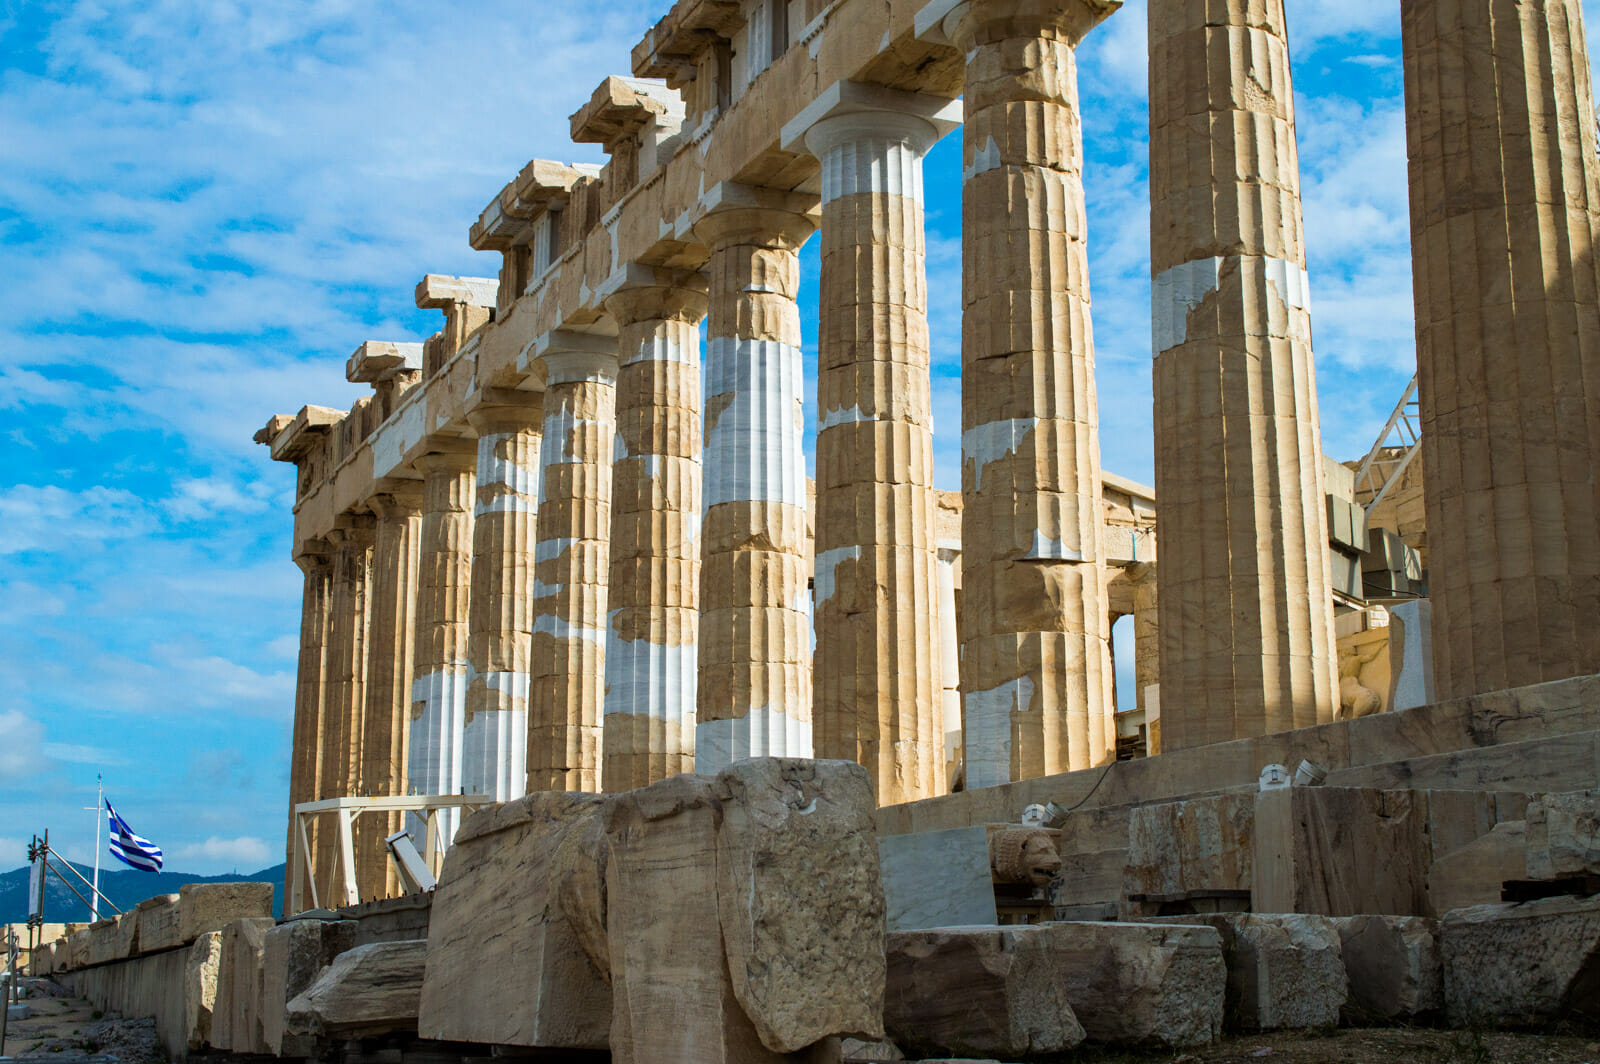 The Helenistic architecture of the Parthenon